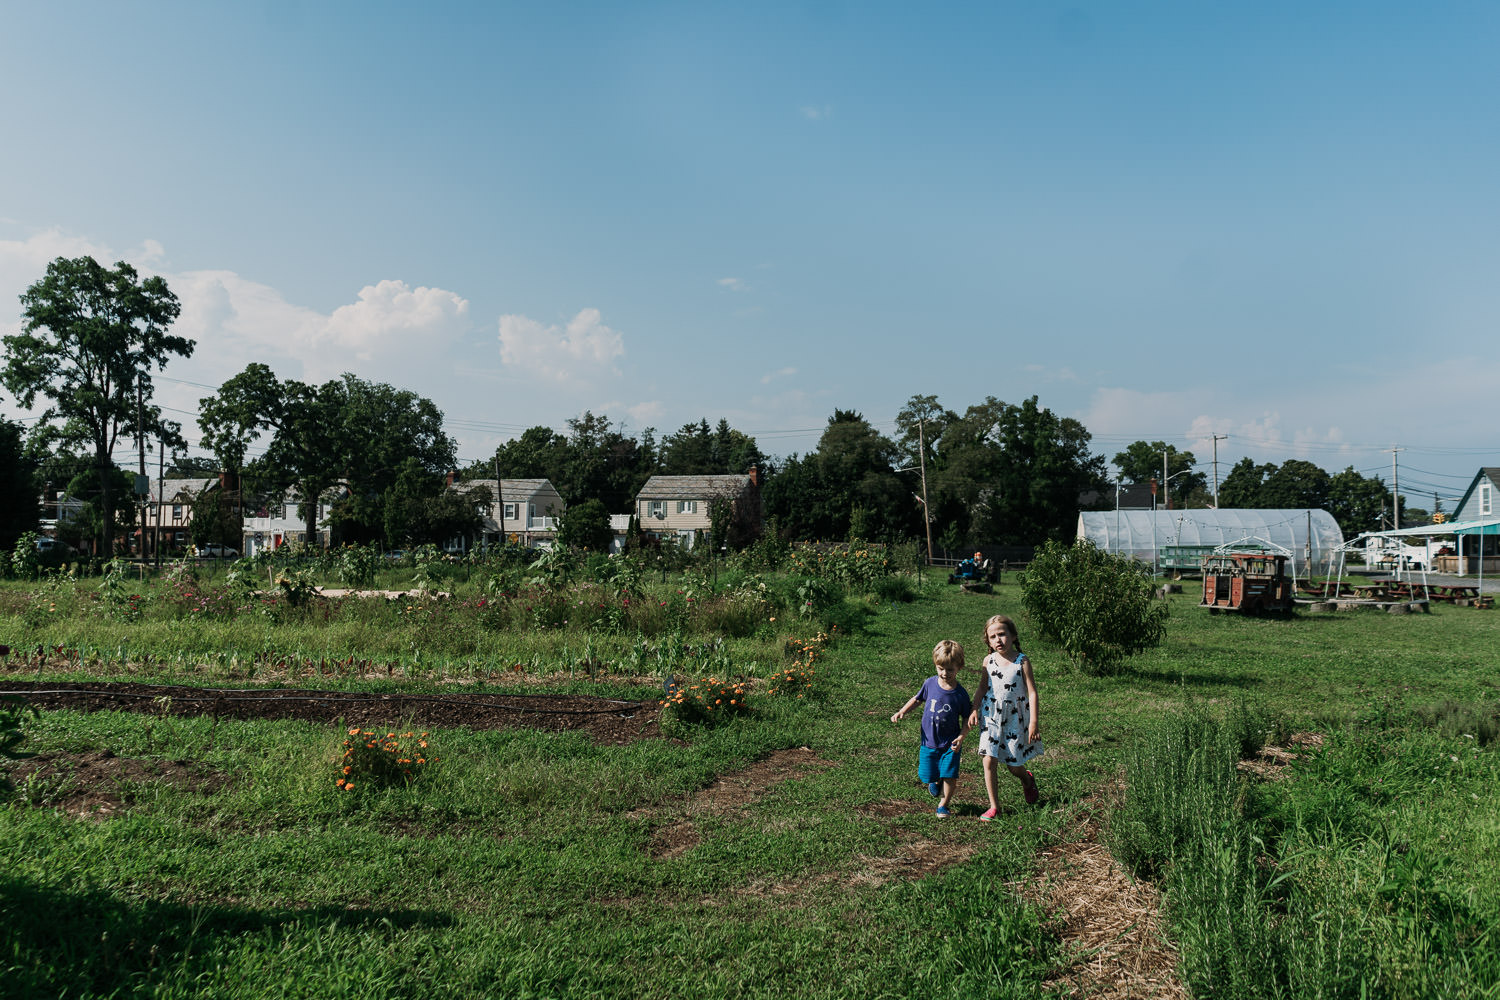 Two kids walk through the fields at Crossroads Farm.